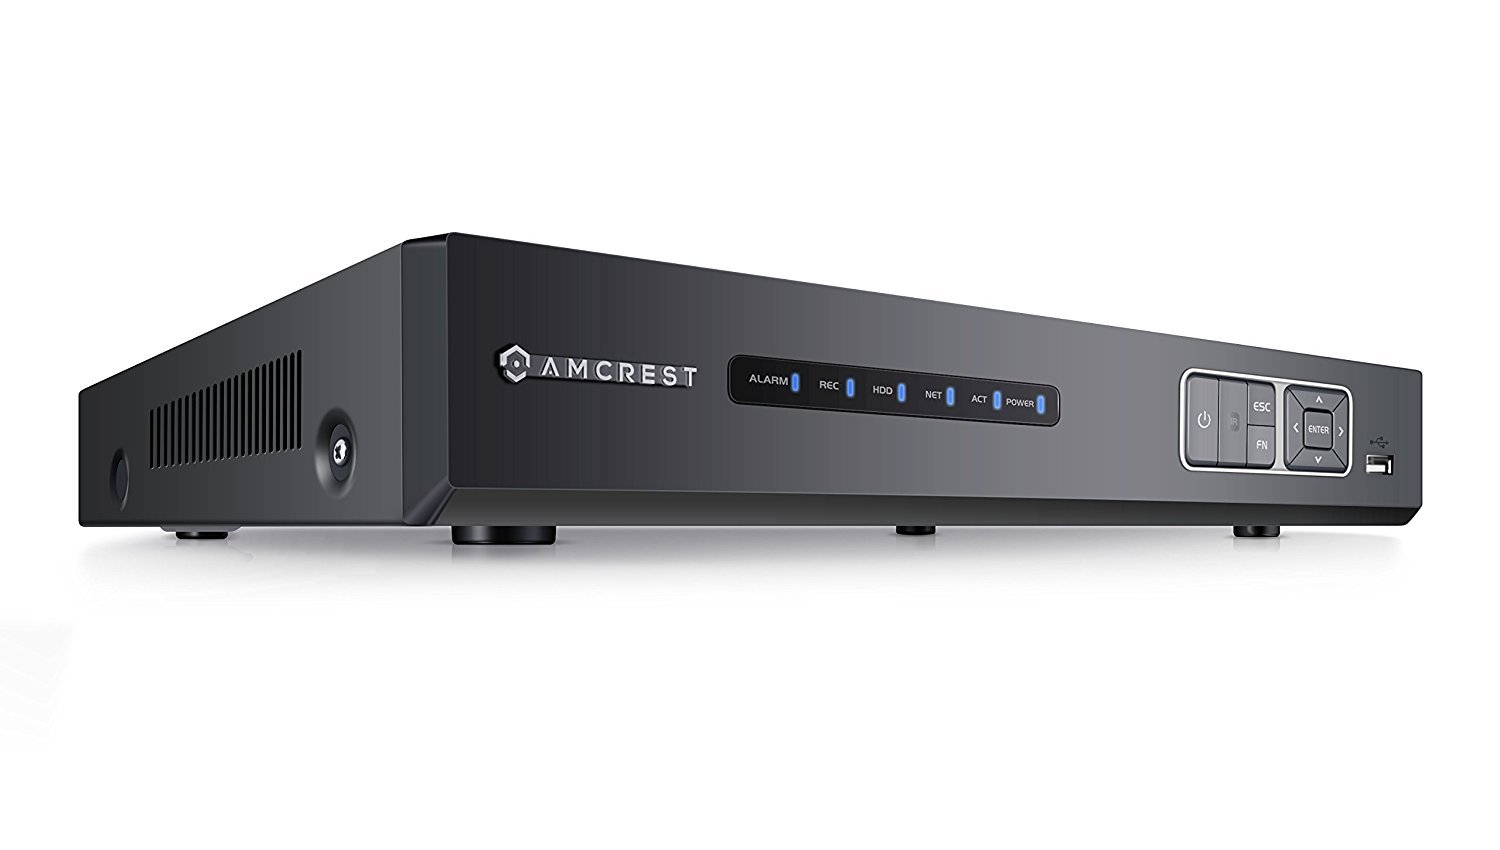 Amcrest NV1104E 1080p POE NVR (4CH 1080p/3MP/4MP/5MP) Network Video Recorder - Supports up to 4 x 2.1MP POE IP Cameras @ 30fps Realtime, Supports up to 4TB HDD (Not Included) (Renewed) by Amcrest